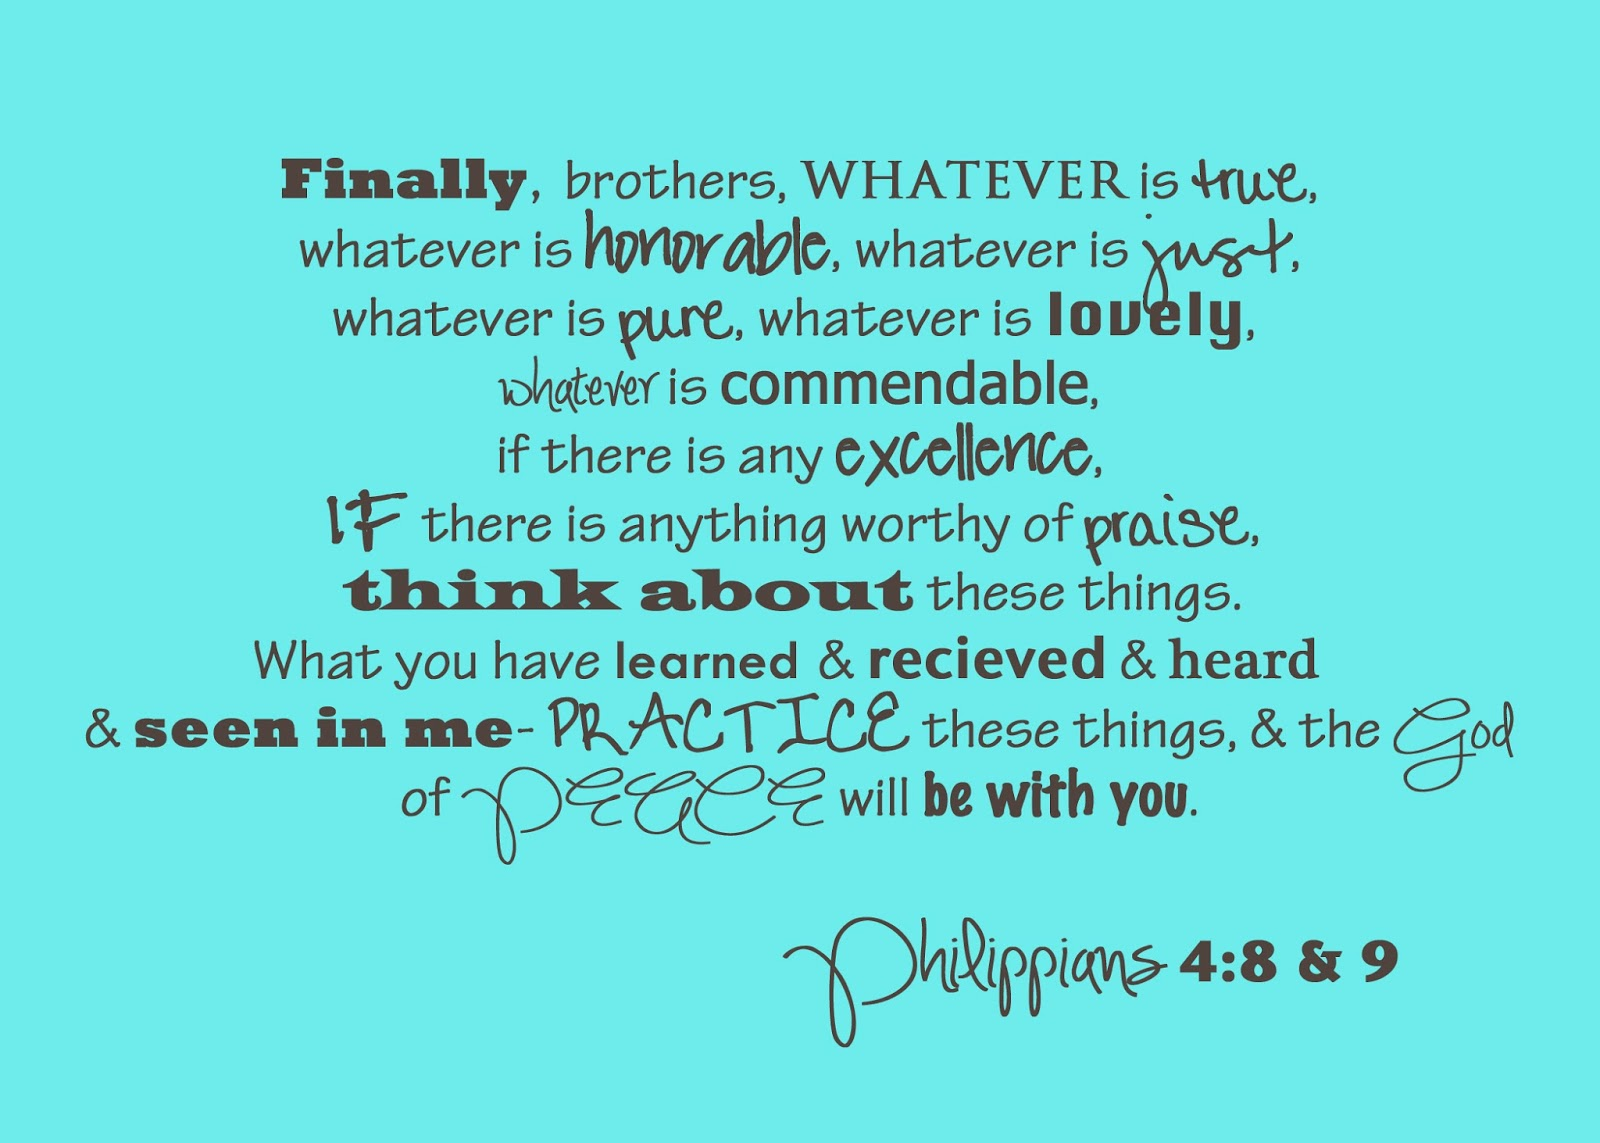 Buggy Full of Blessings!: We Are Back! Philippians 4:8 & 9